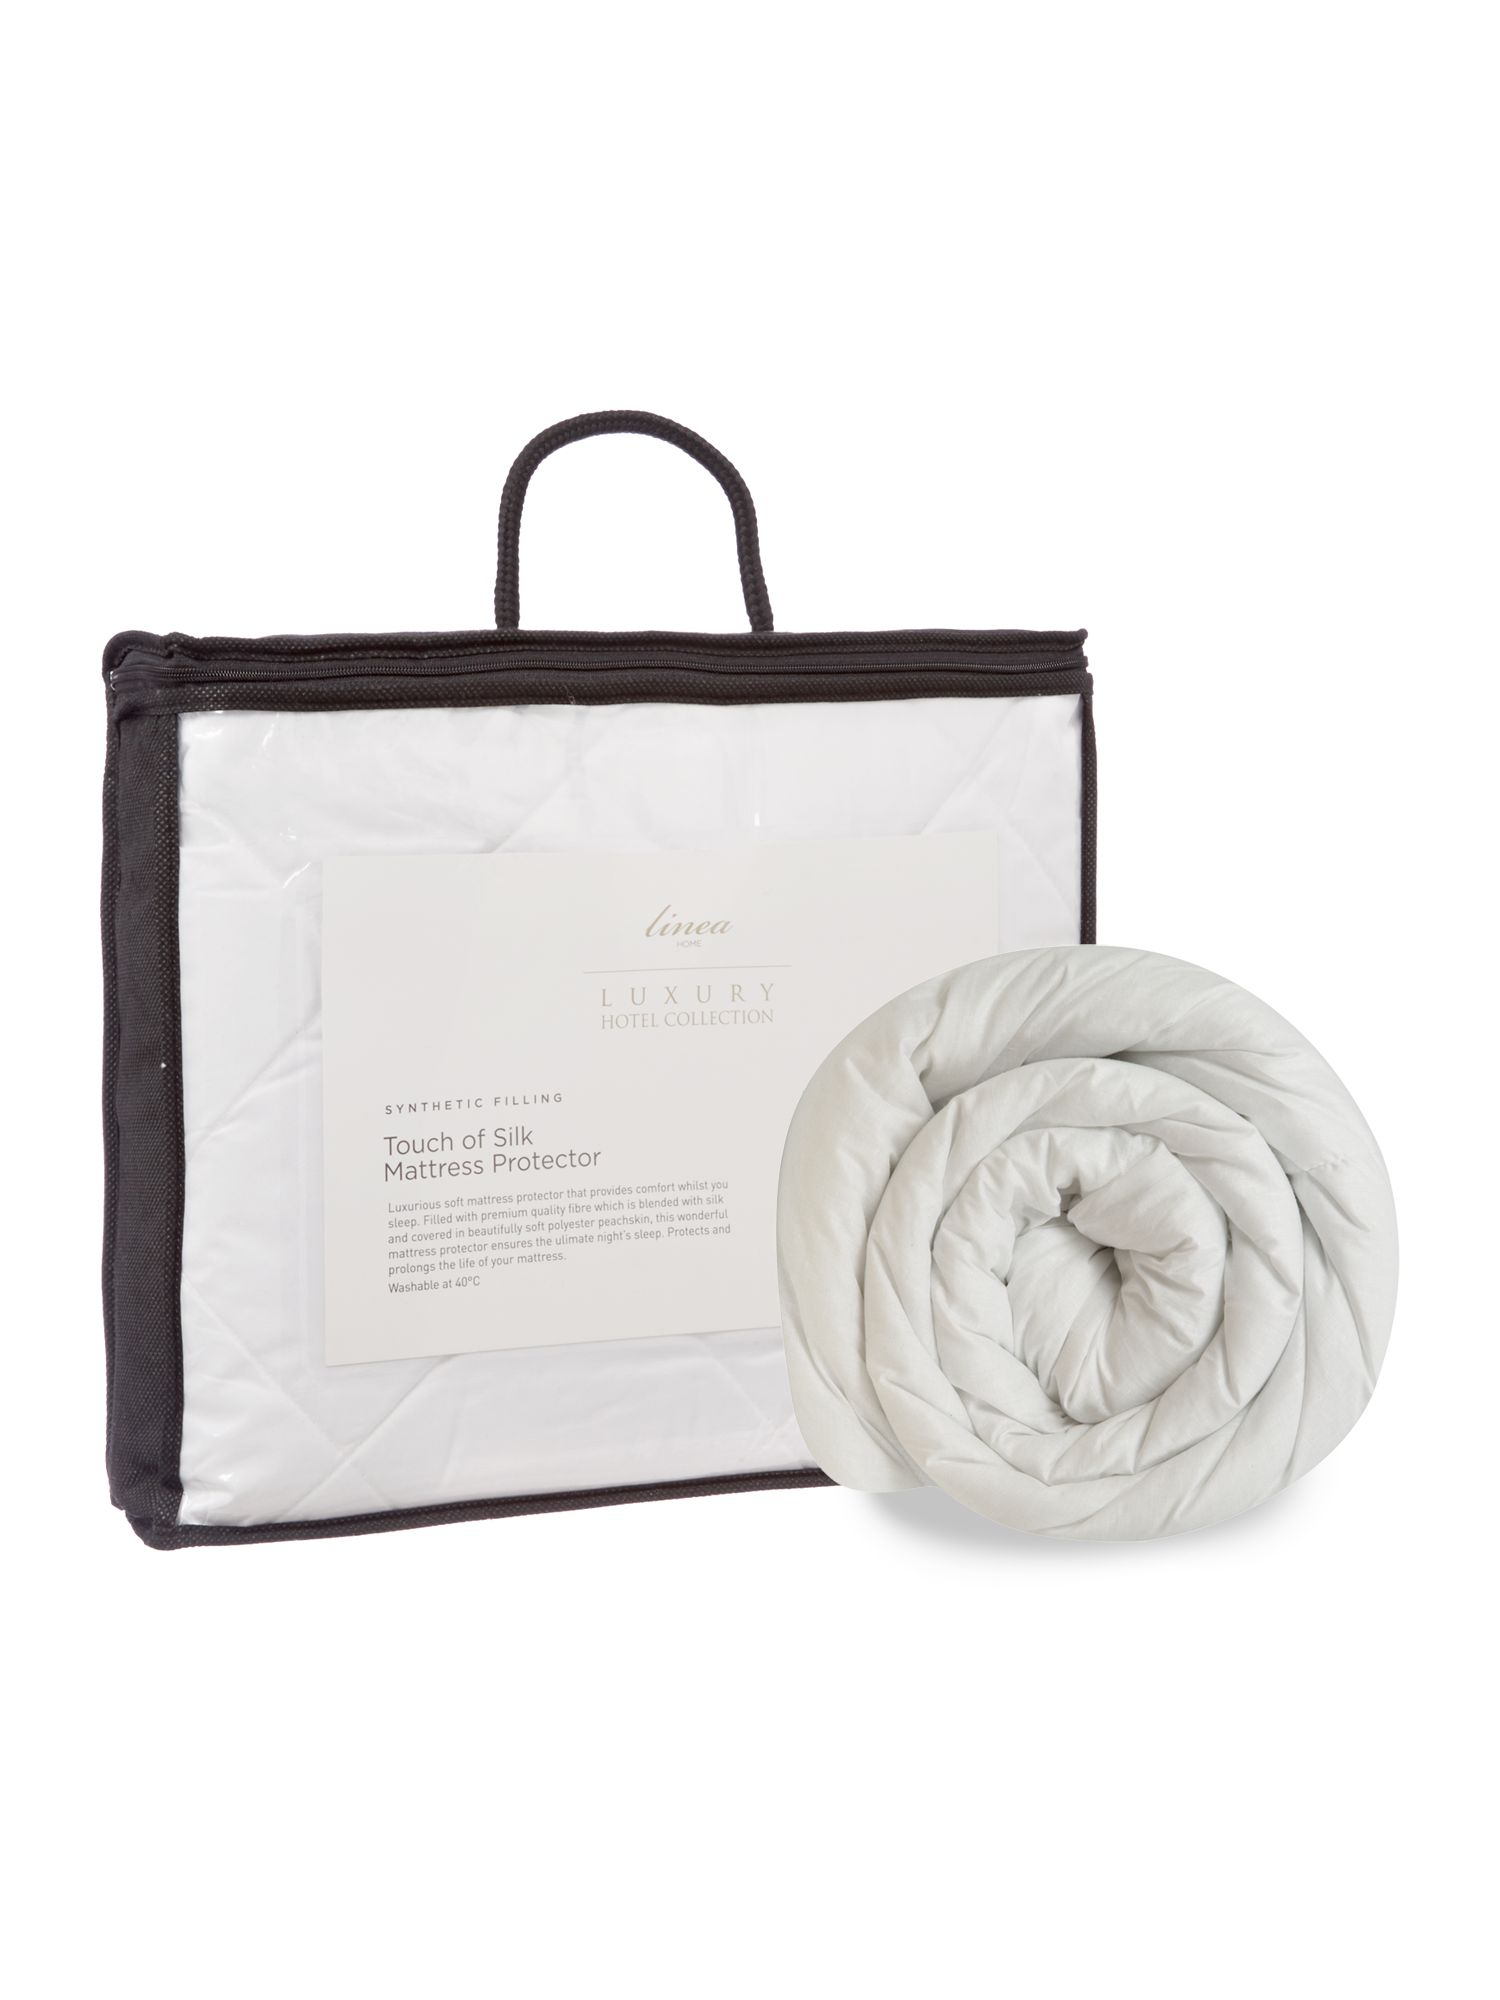 Touch of silk mattress protectors